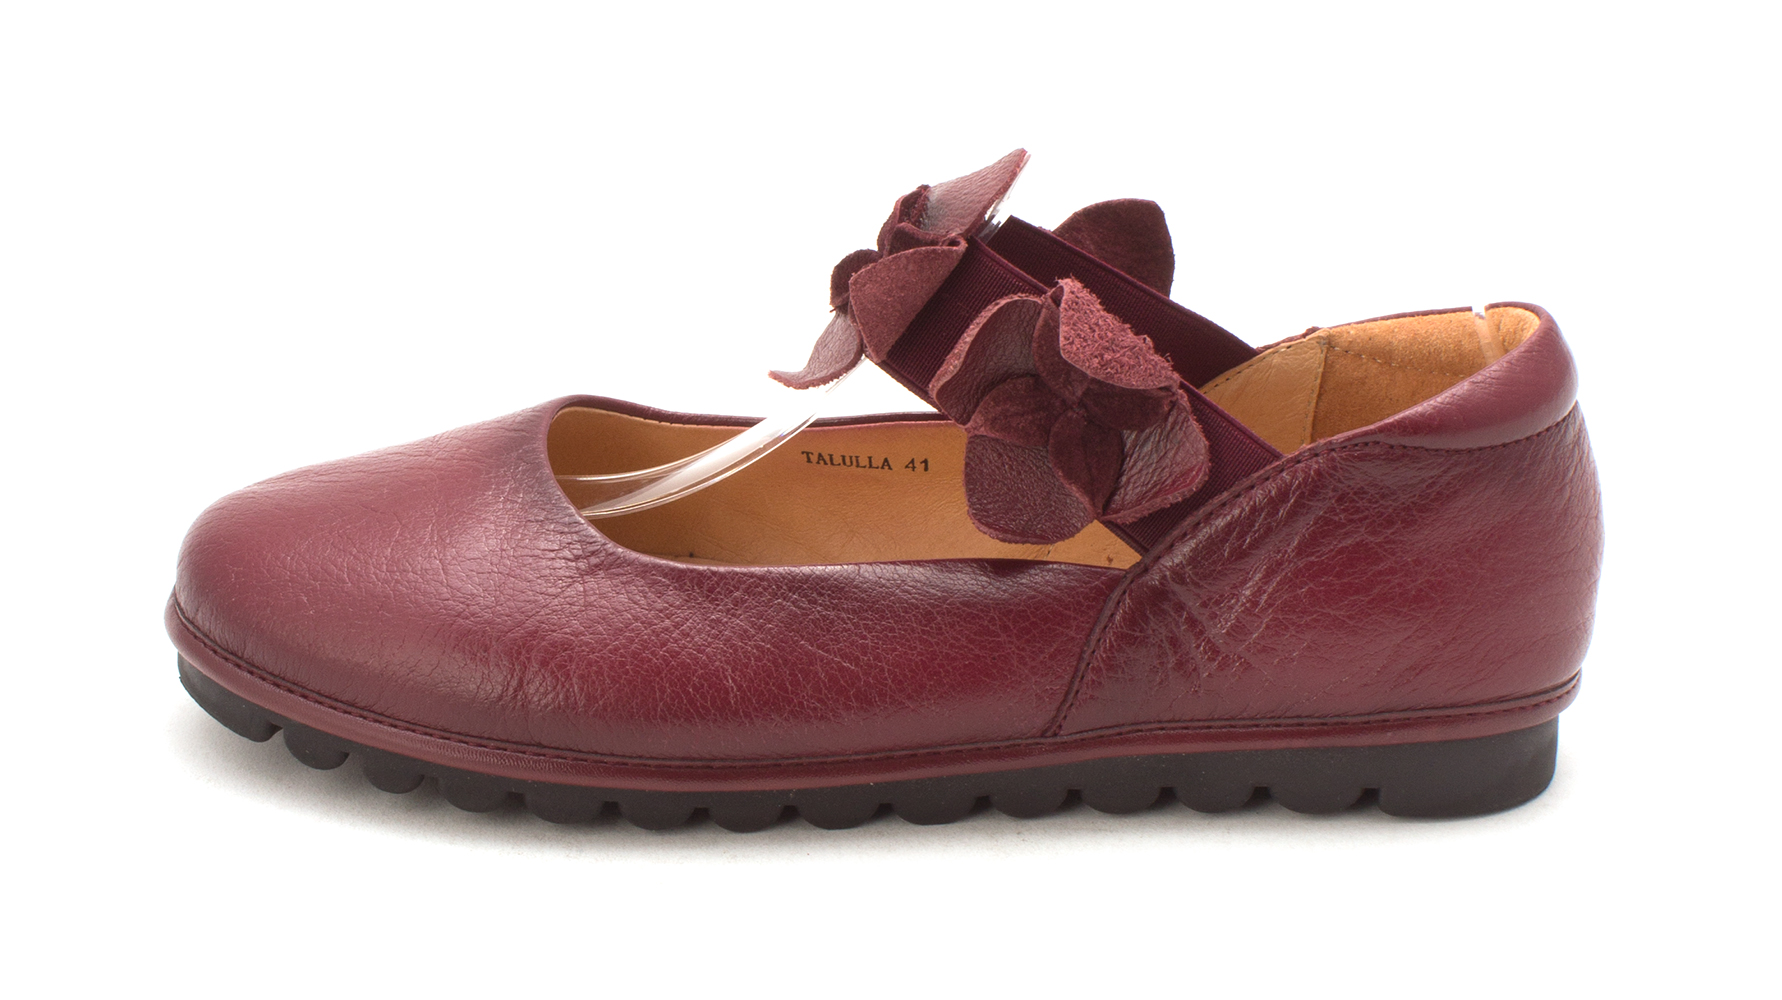 c1ce54c503cb L Artiste by Spring Step Womens Talulla 41 Closed Toe Ballet Flats